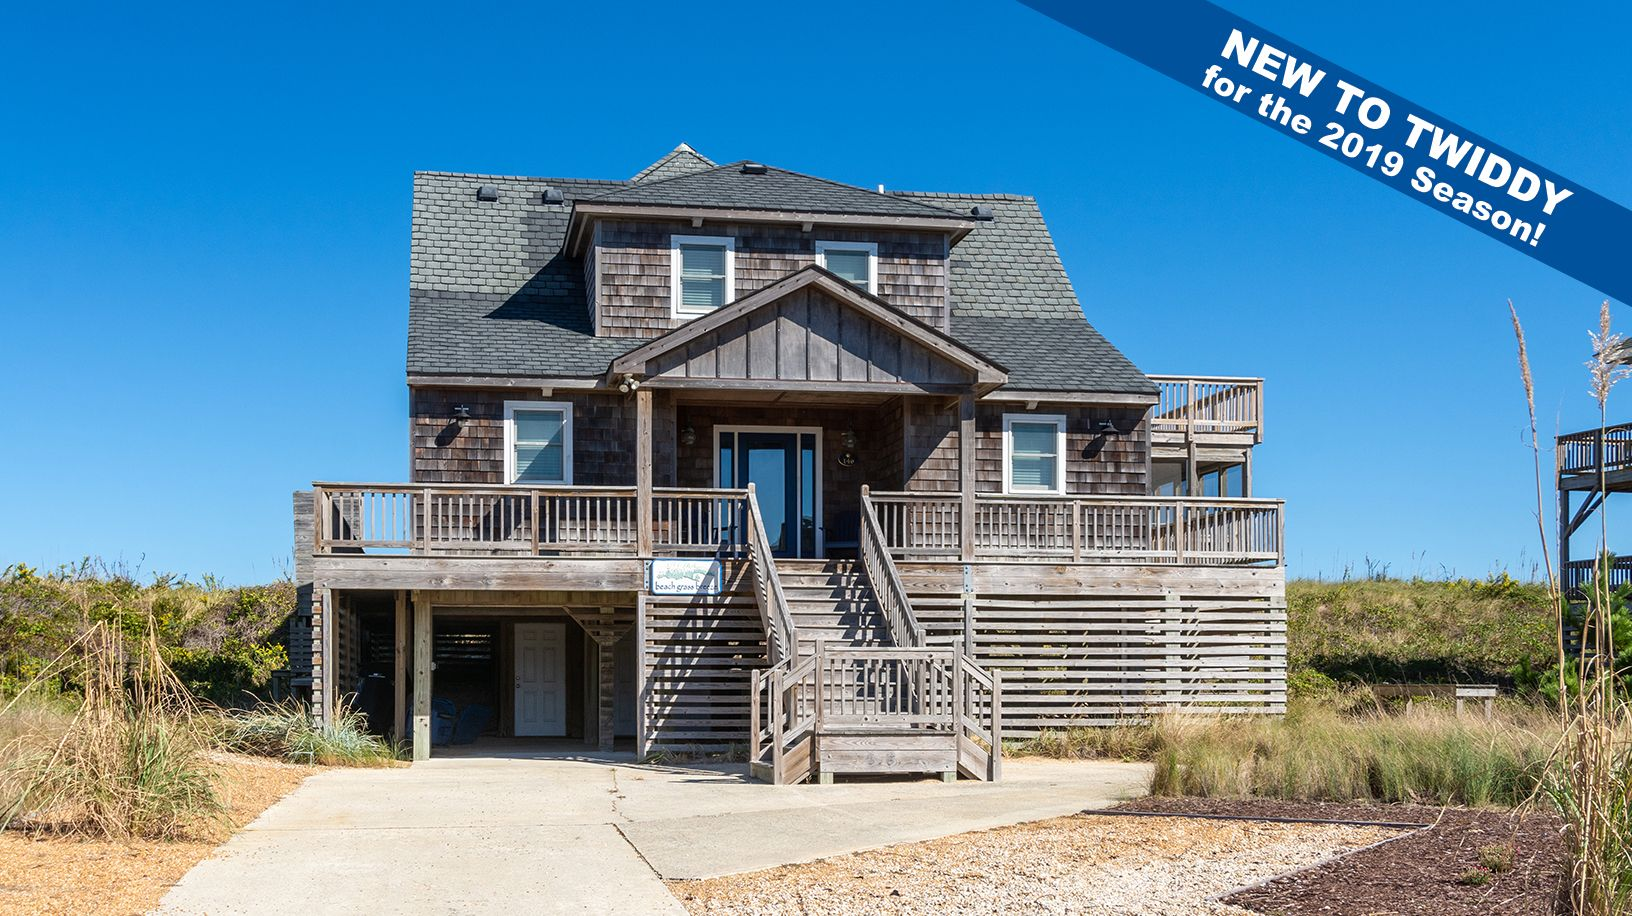 Beach Grass Breeze B915 Is An Outer Banks Oceanfront Vacation Rental In Sanderling Duck Nc Oceanfront Vacation Rentals Beach Grass East Coast Beach Vacation